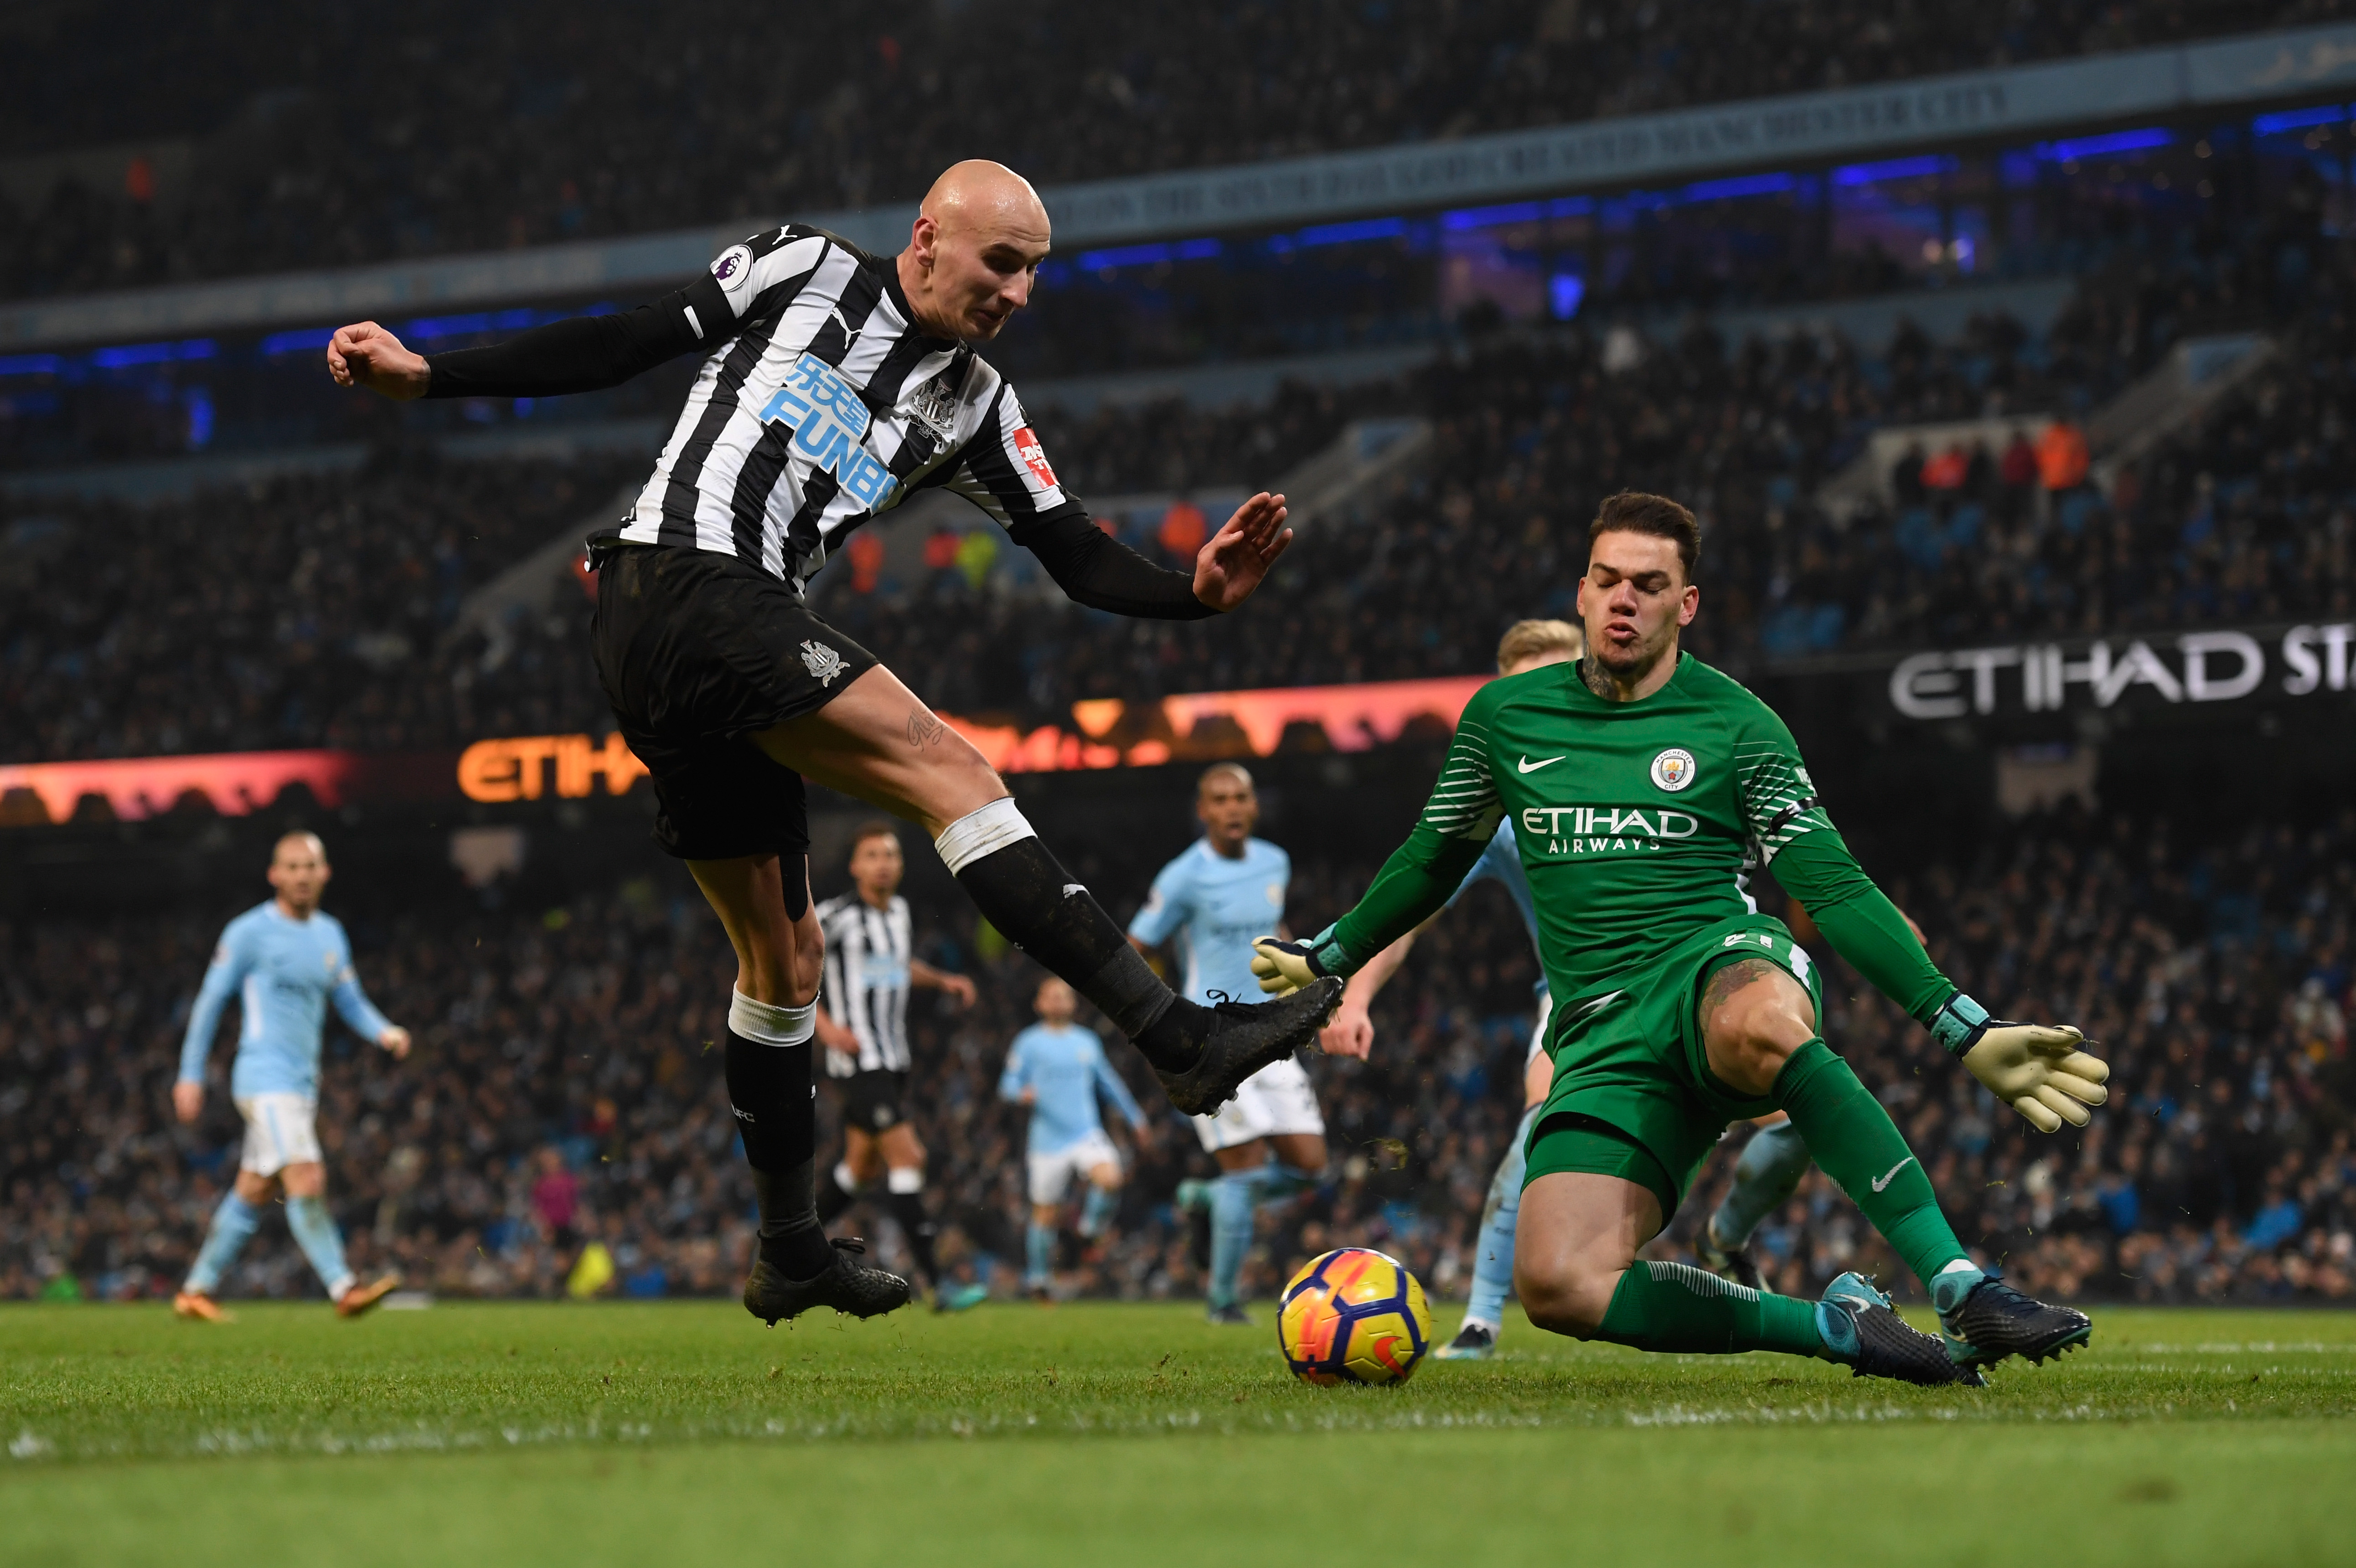 Manchester City vs Newcastle United, Premier League Matchday 4: Team News, Preview and Prediction